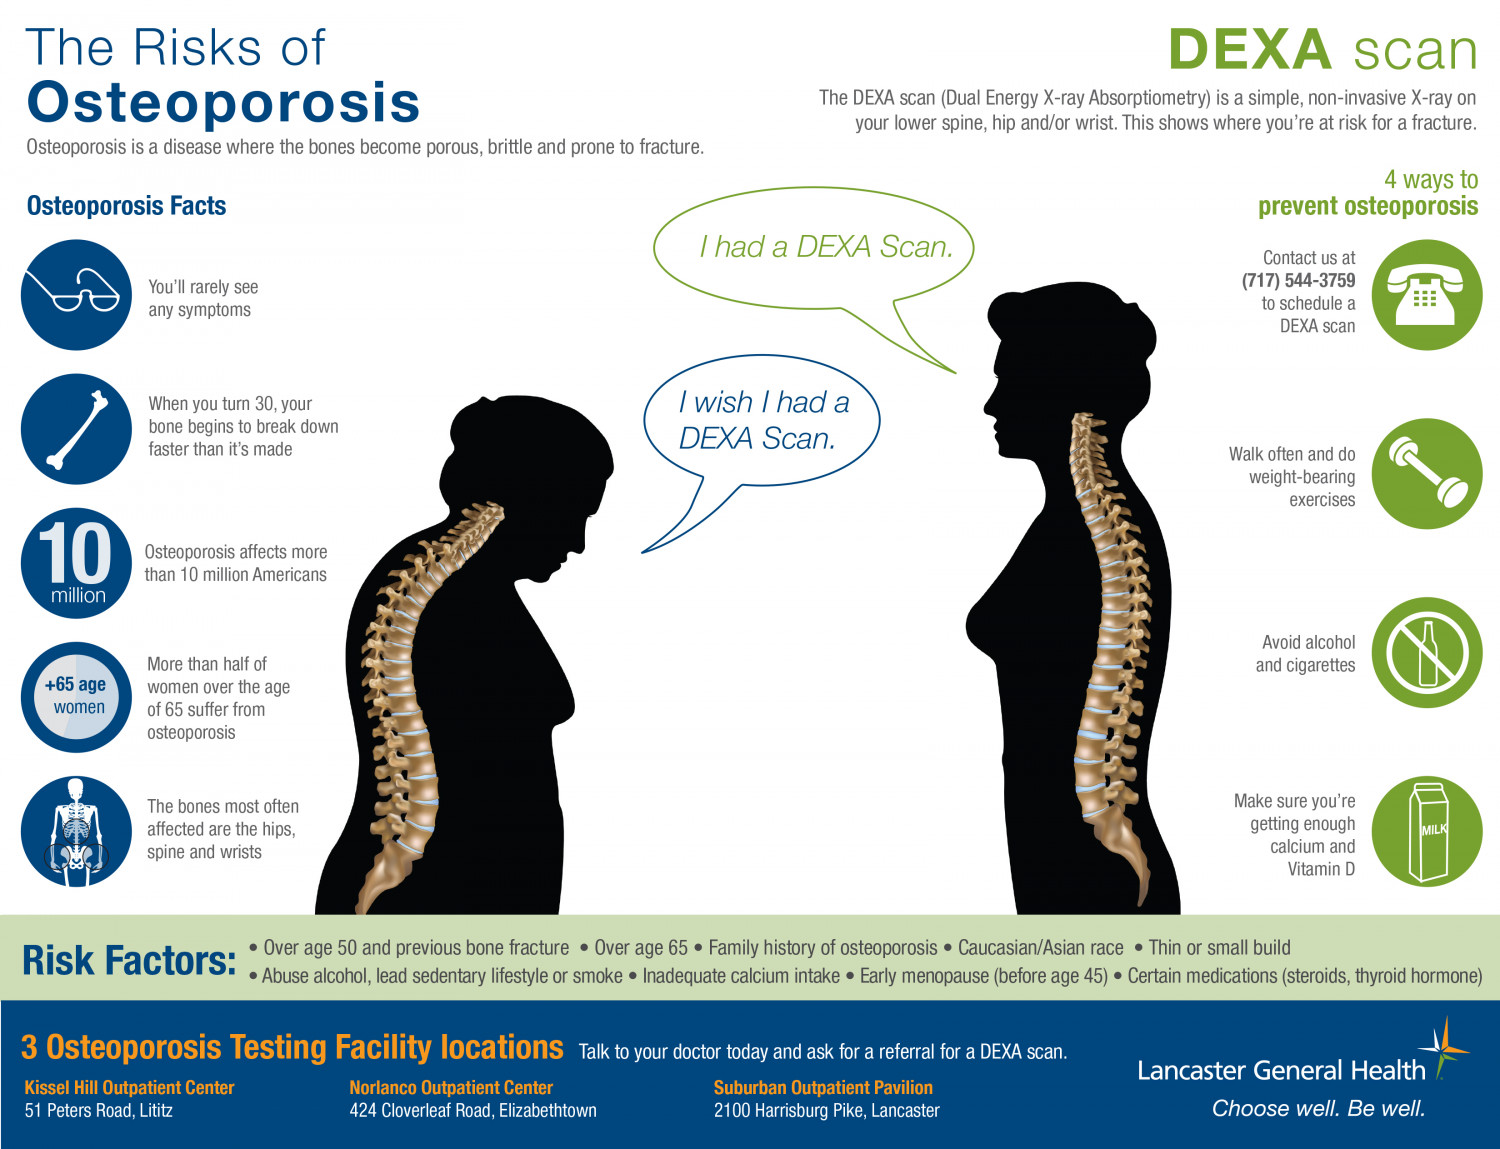 Know Your Risks of Osteoporosis Infographic